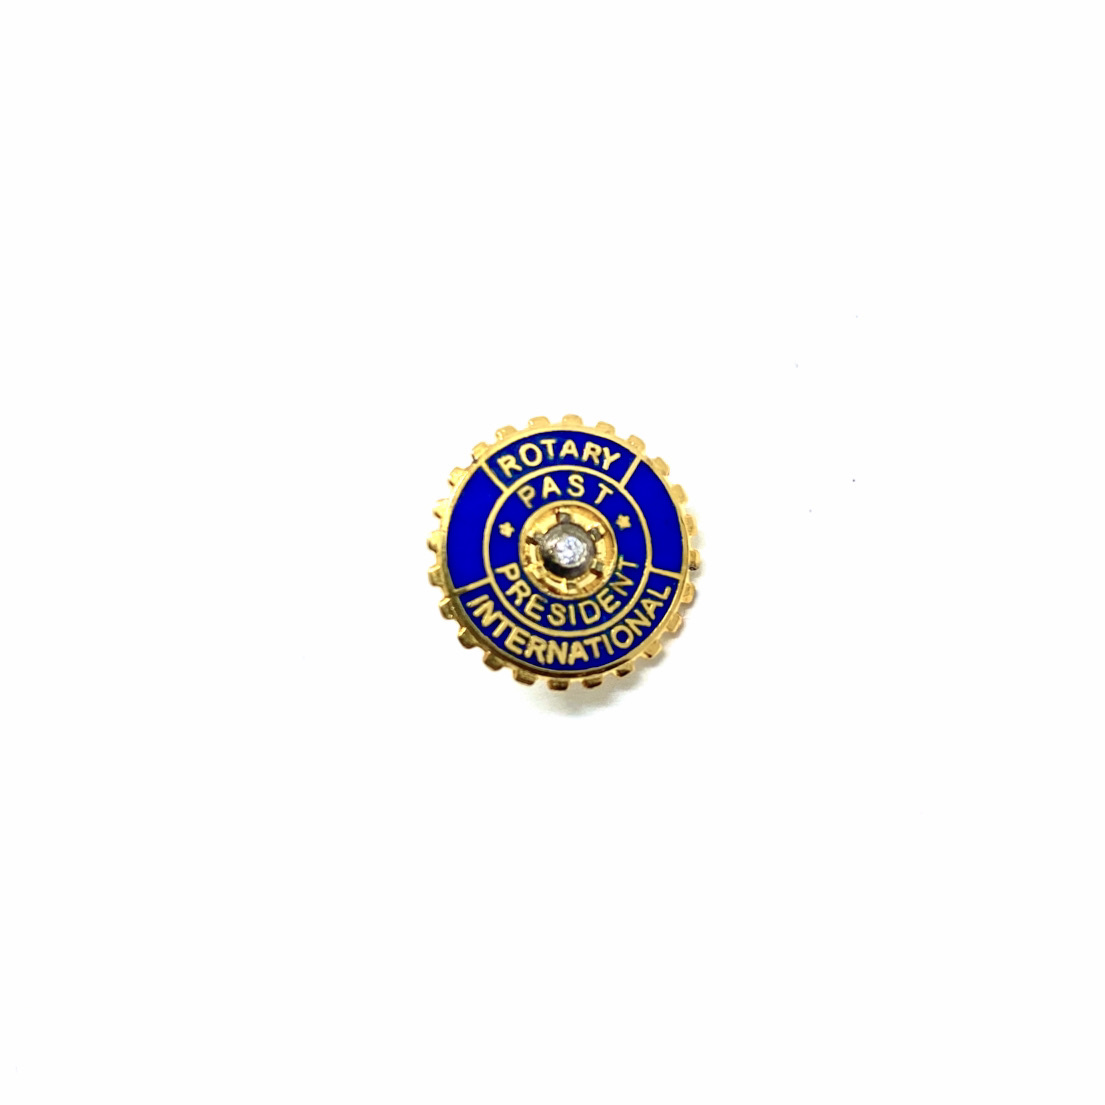 Pin Rotary Past President silver + brilliant 0.04 ct